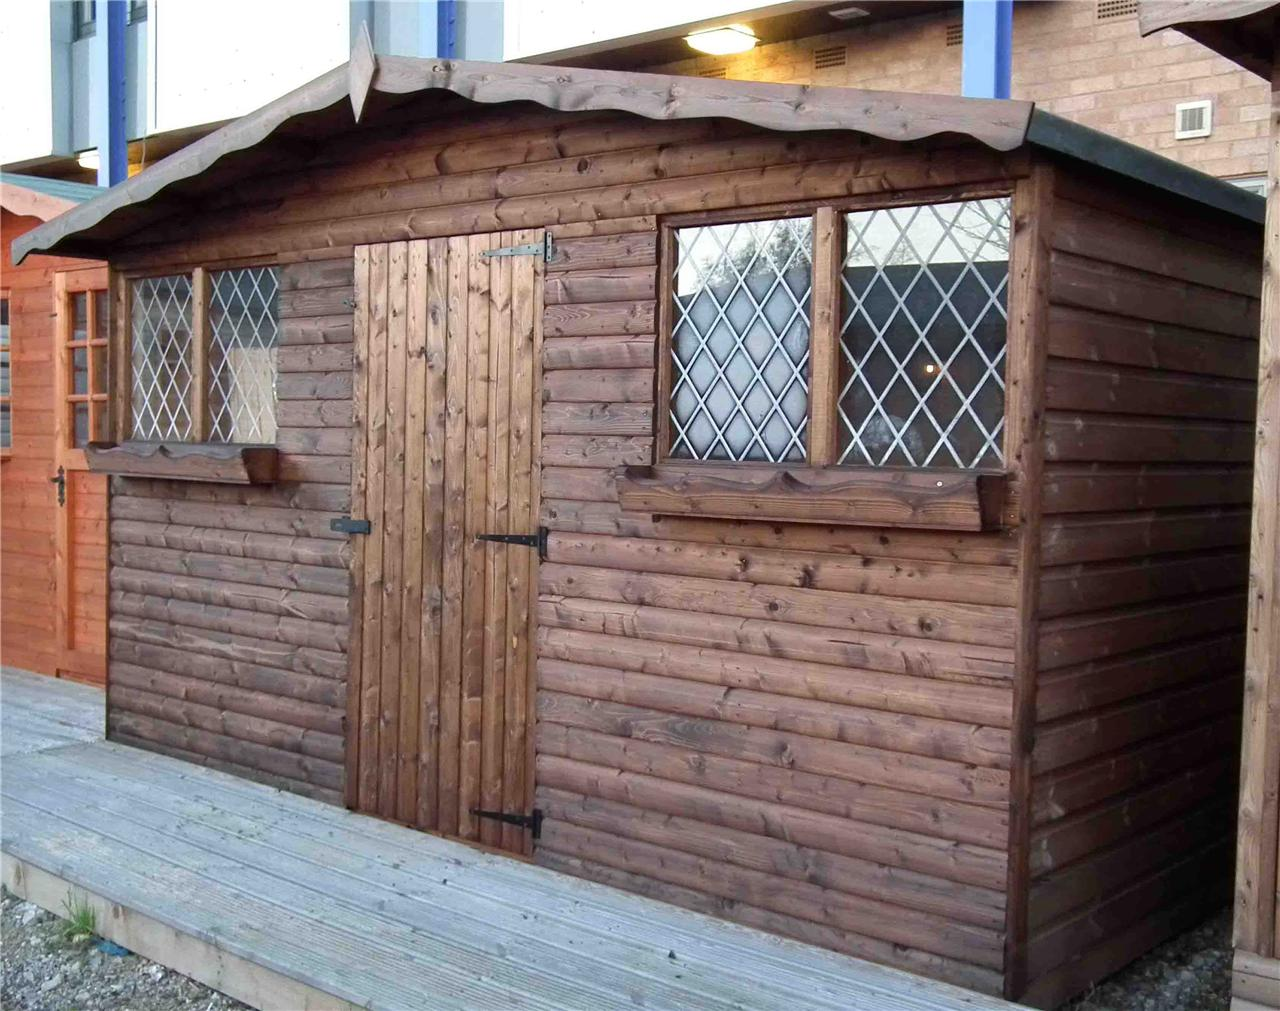 timber sheds frame sale dublin garden steel ireland for shed wicklow